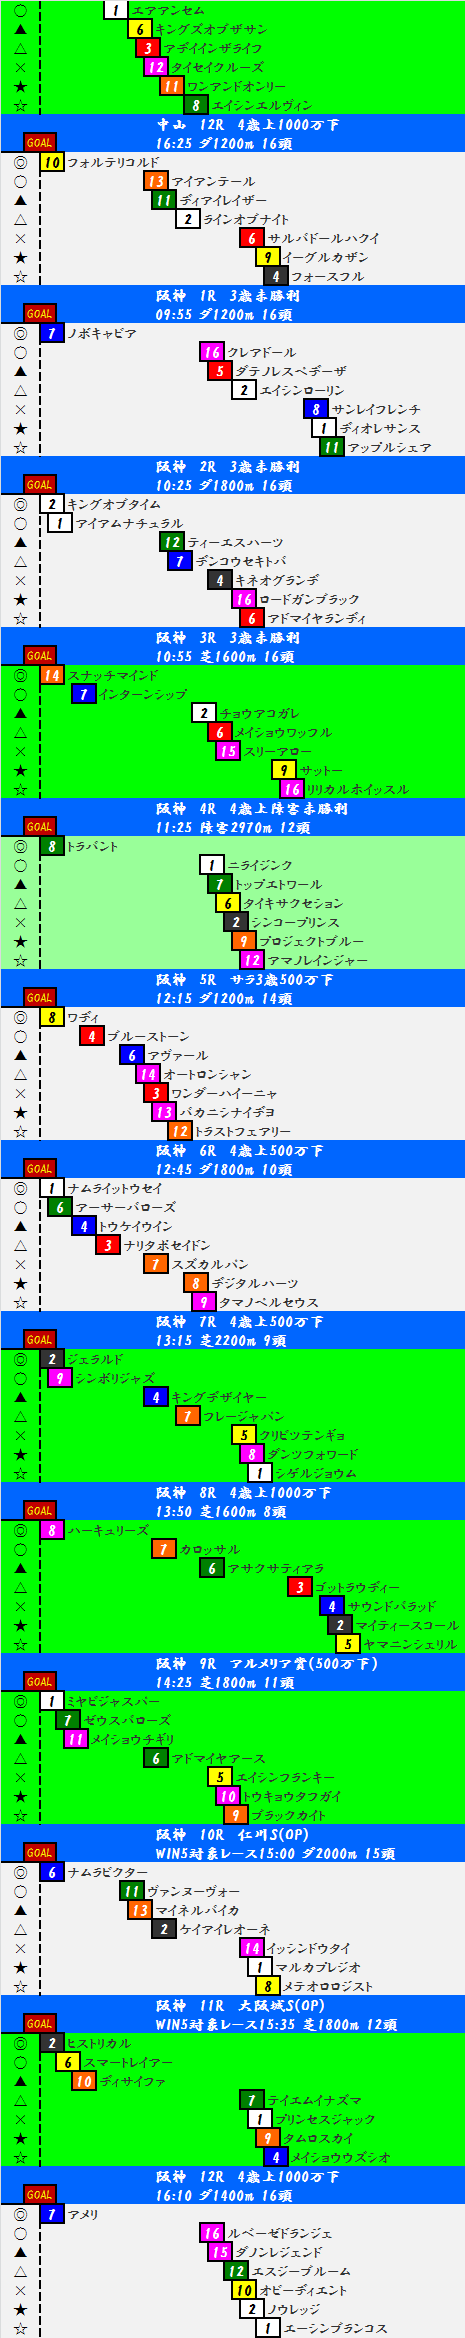 201403092.png